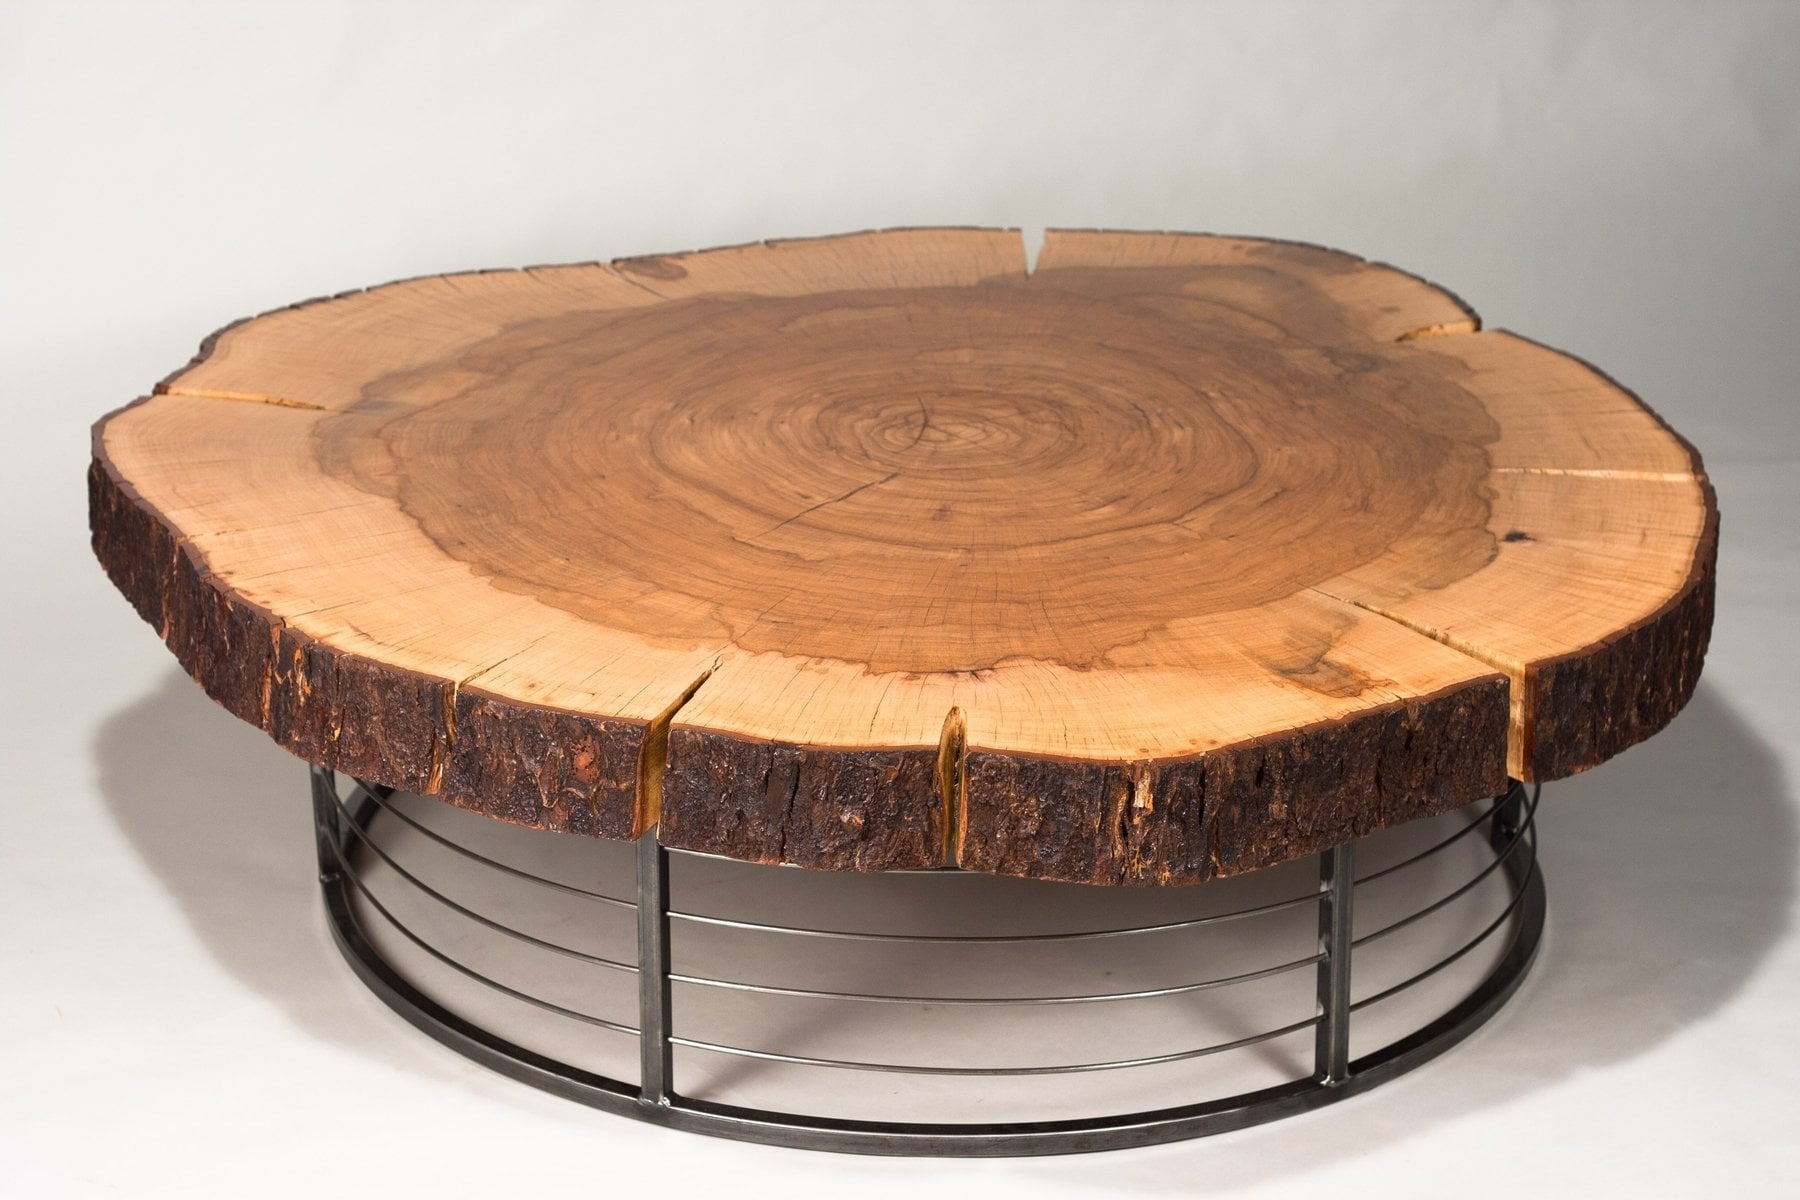 Unique Tree Stump Coffee Table